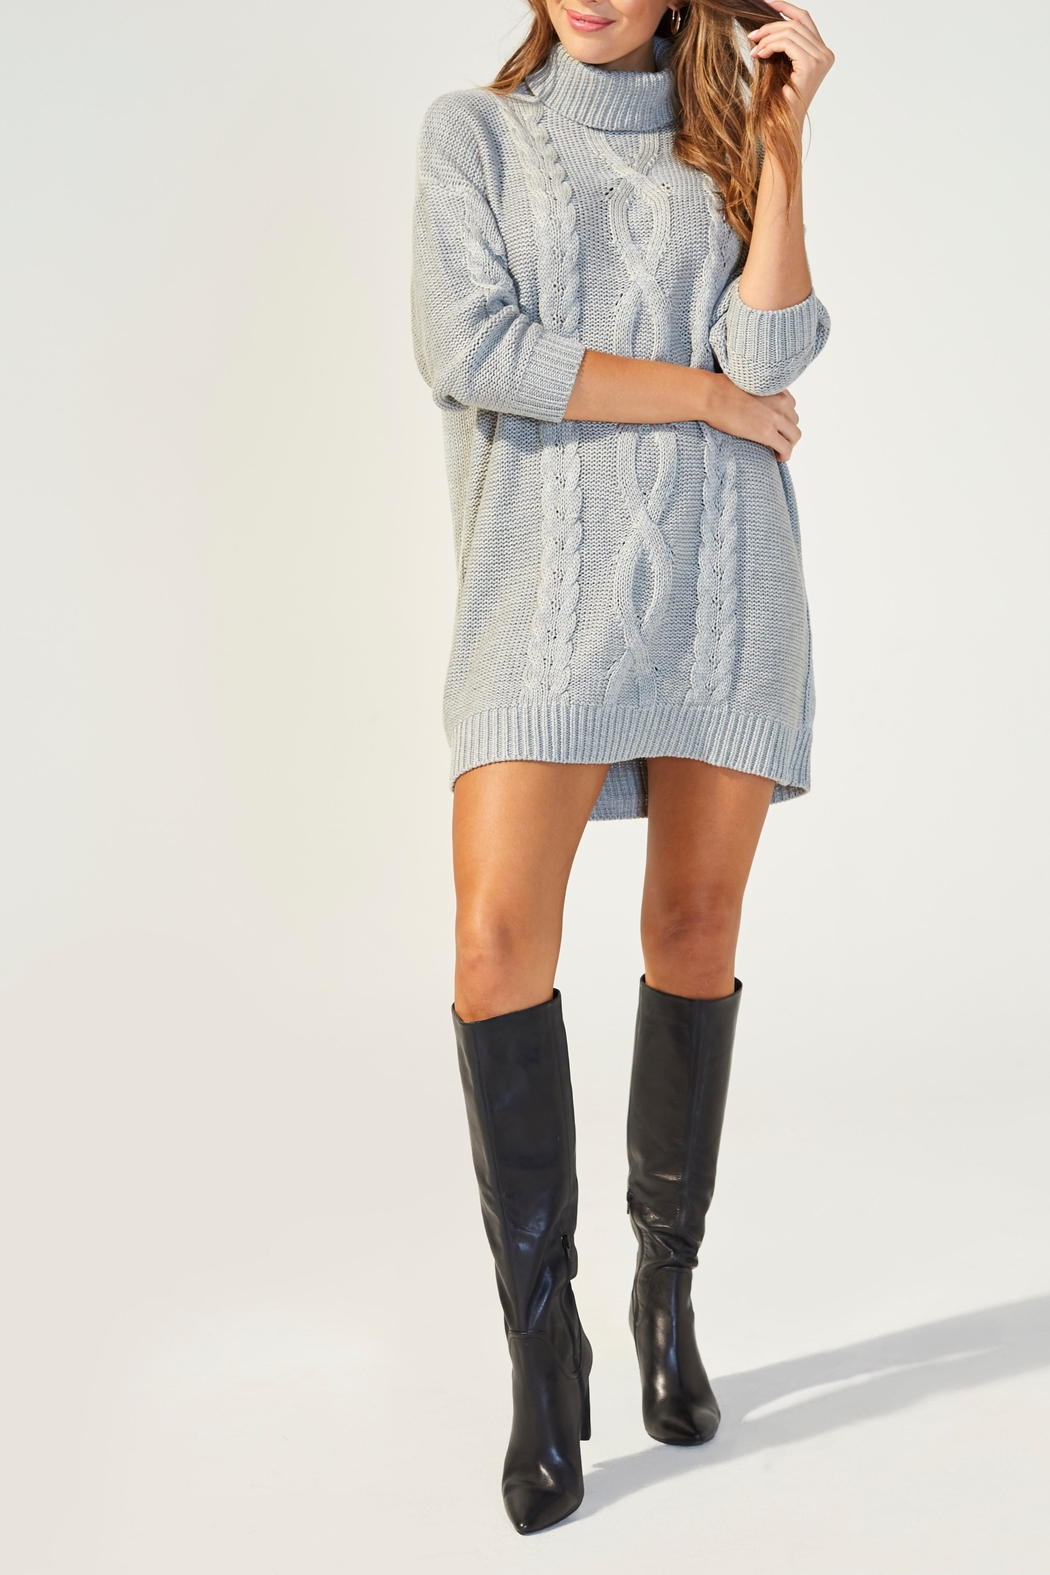 MINKPINK Janine Sweater Dress - Front Full Image